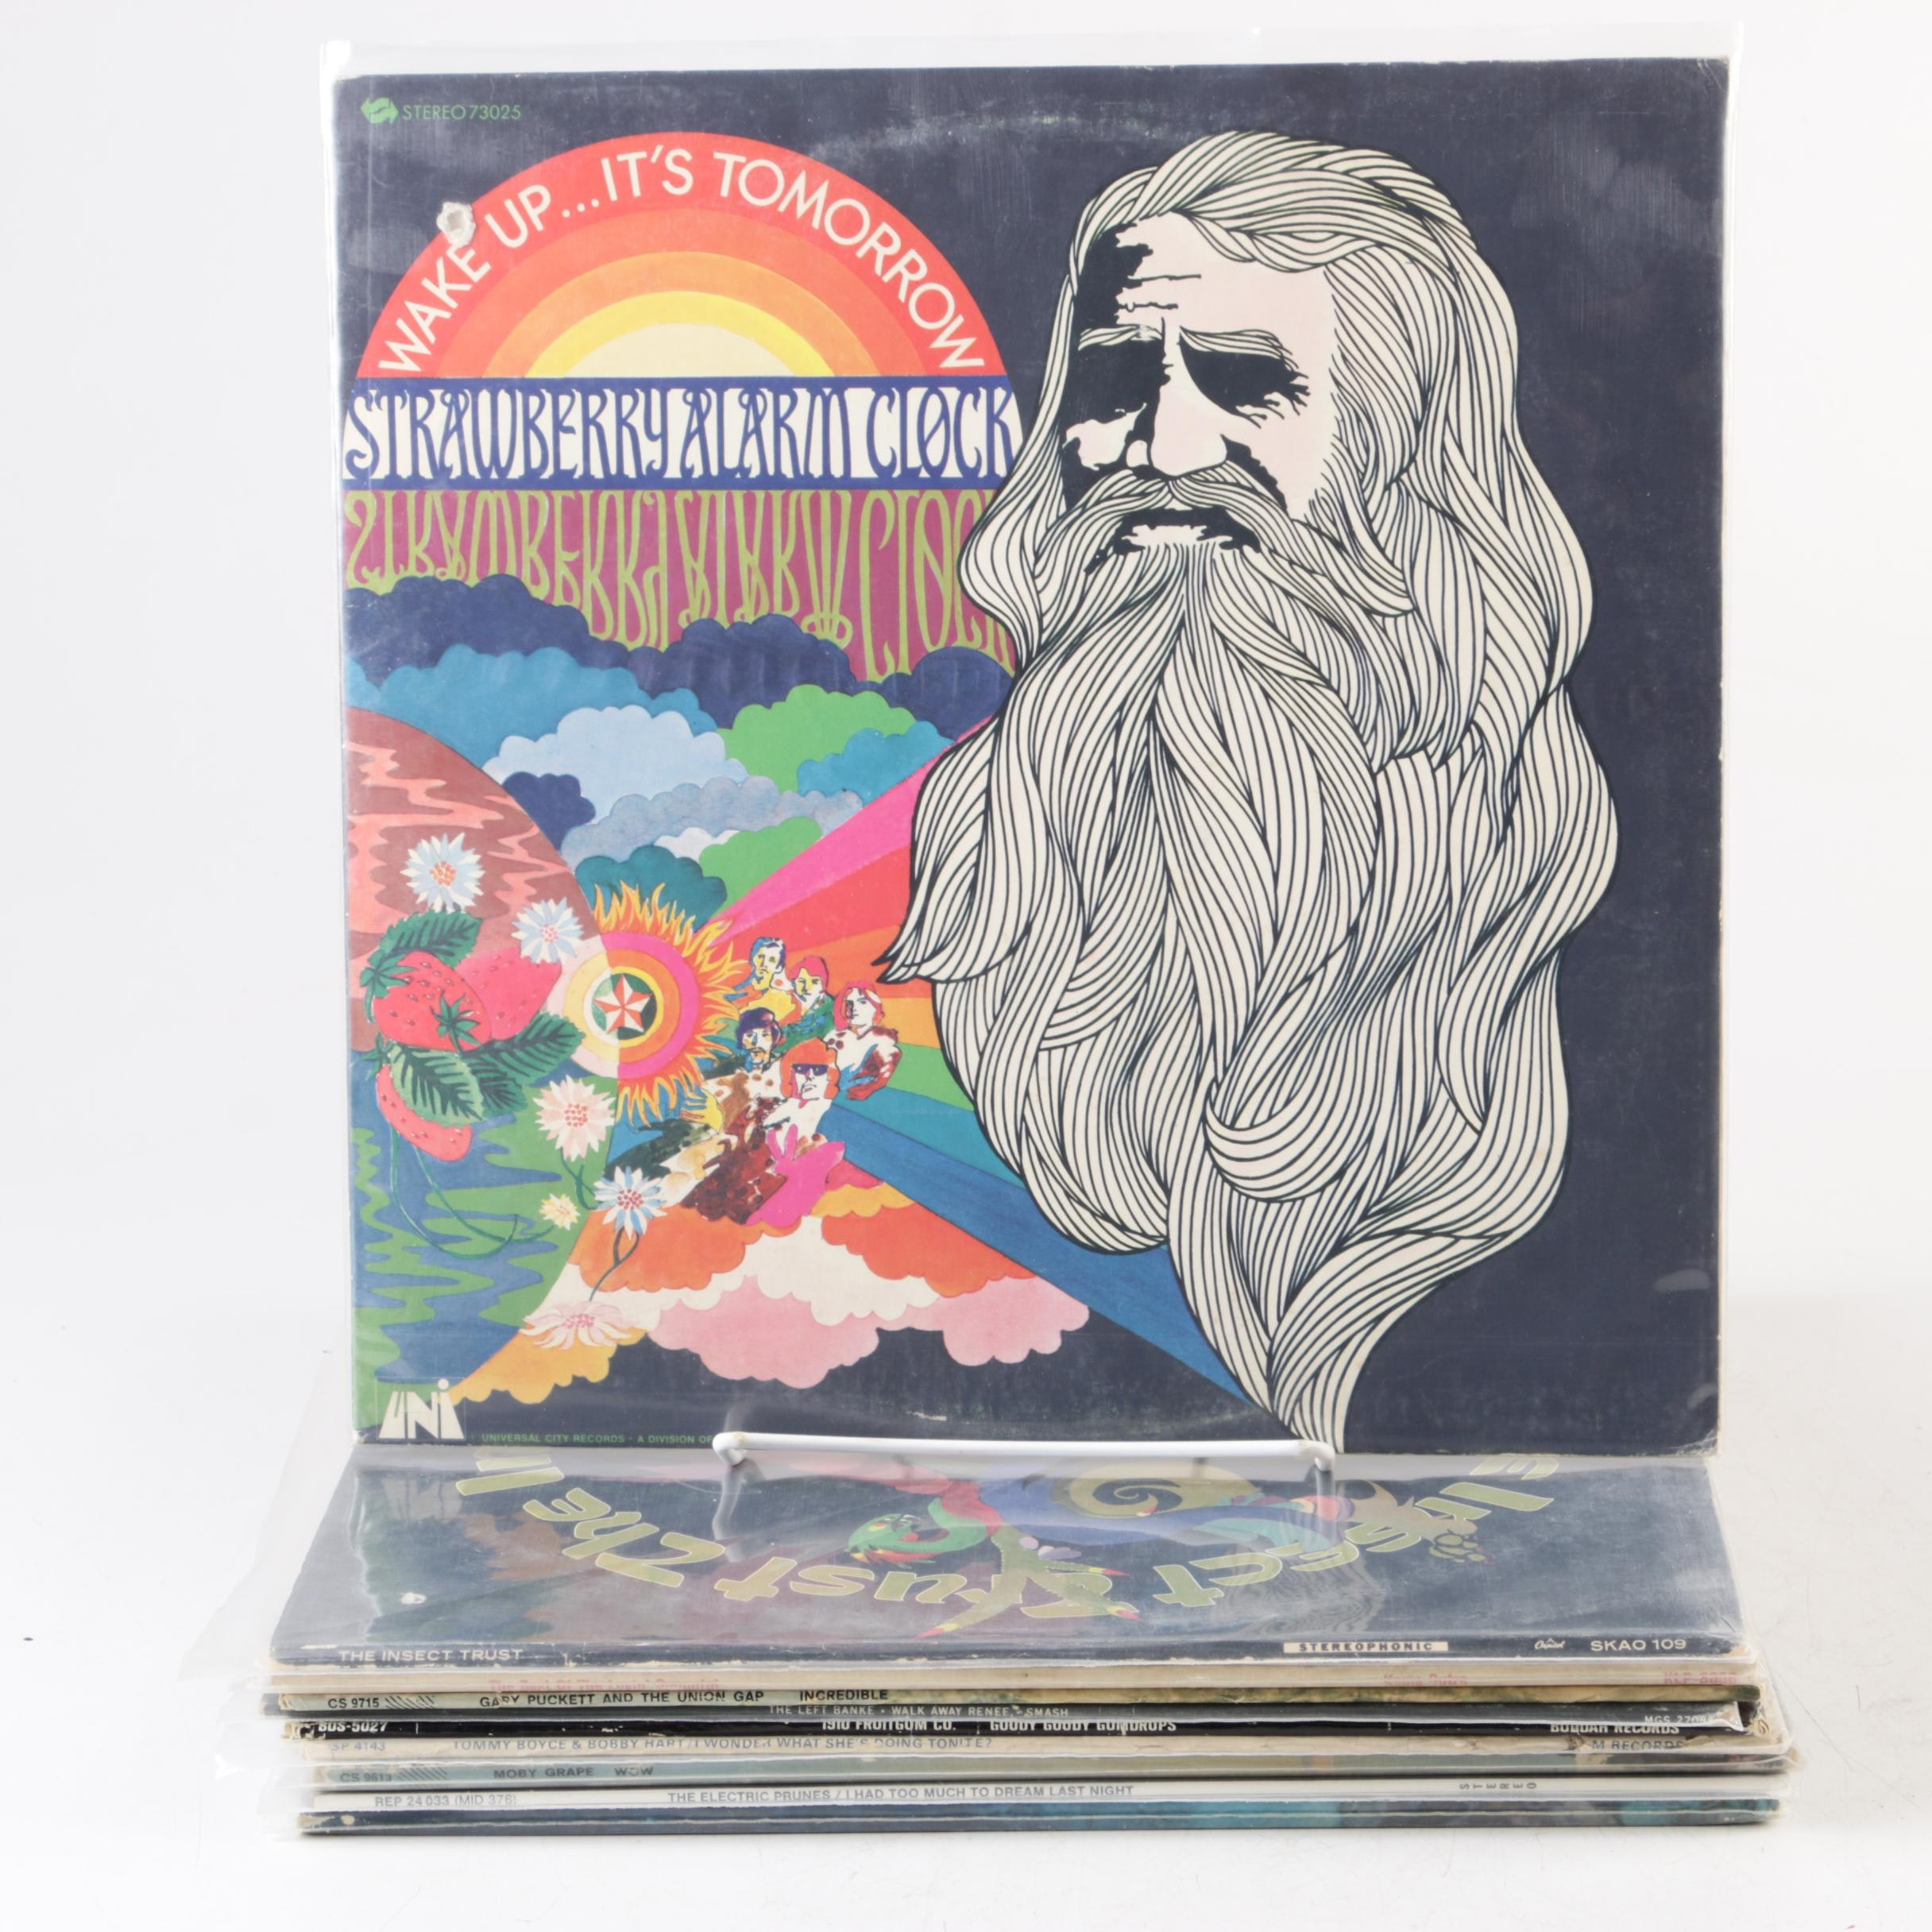 Psychedelic and Bubblegum Records Including The Lovin' Spoonful